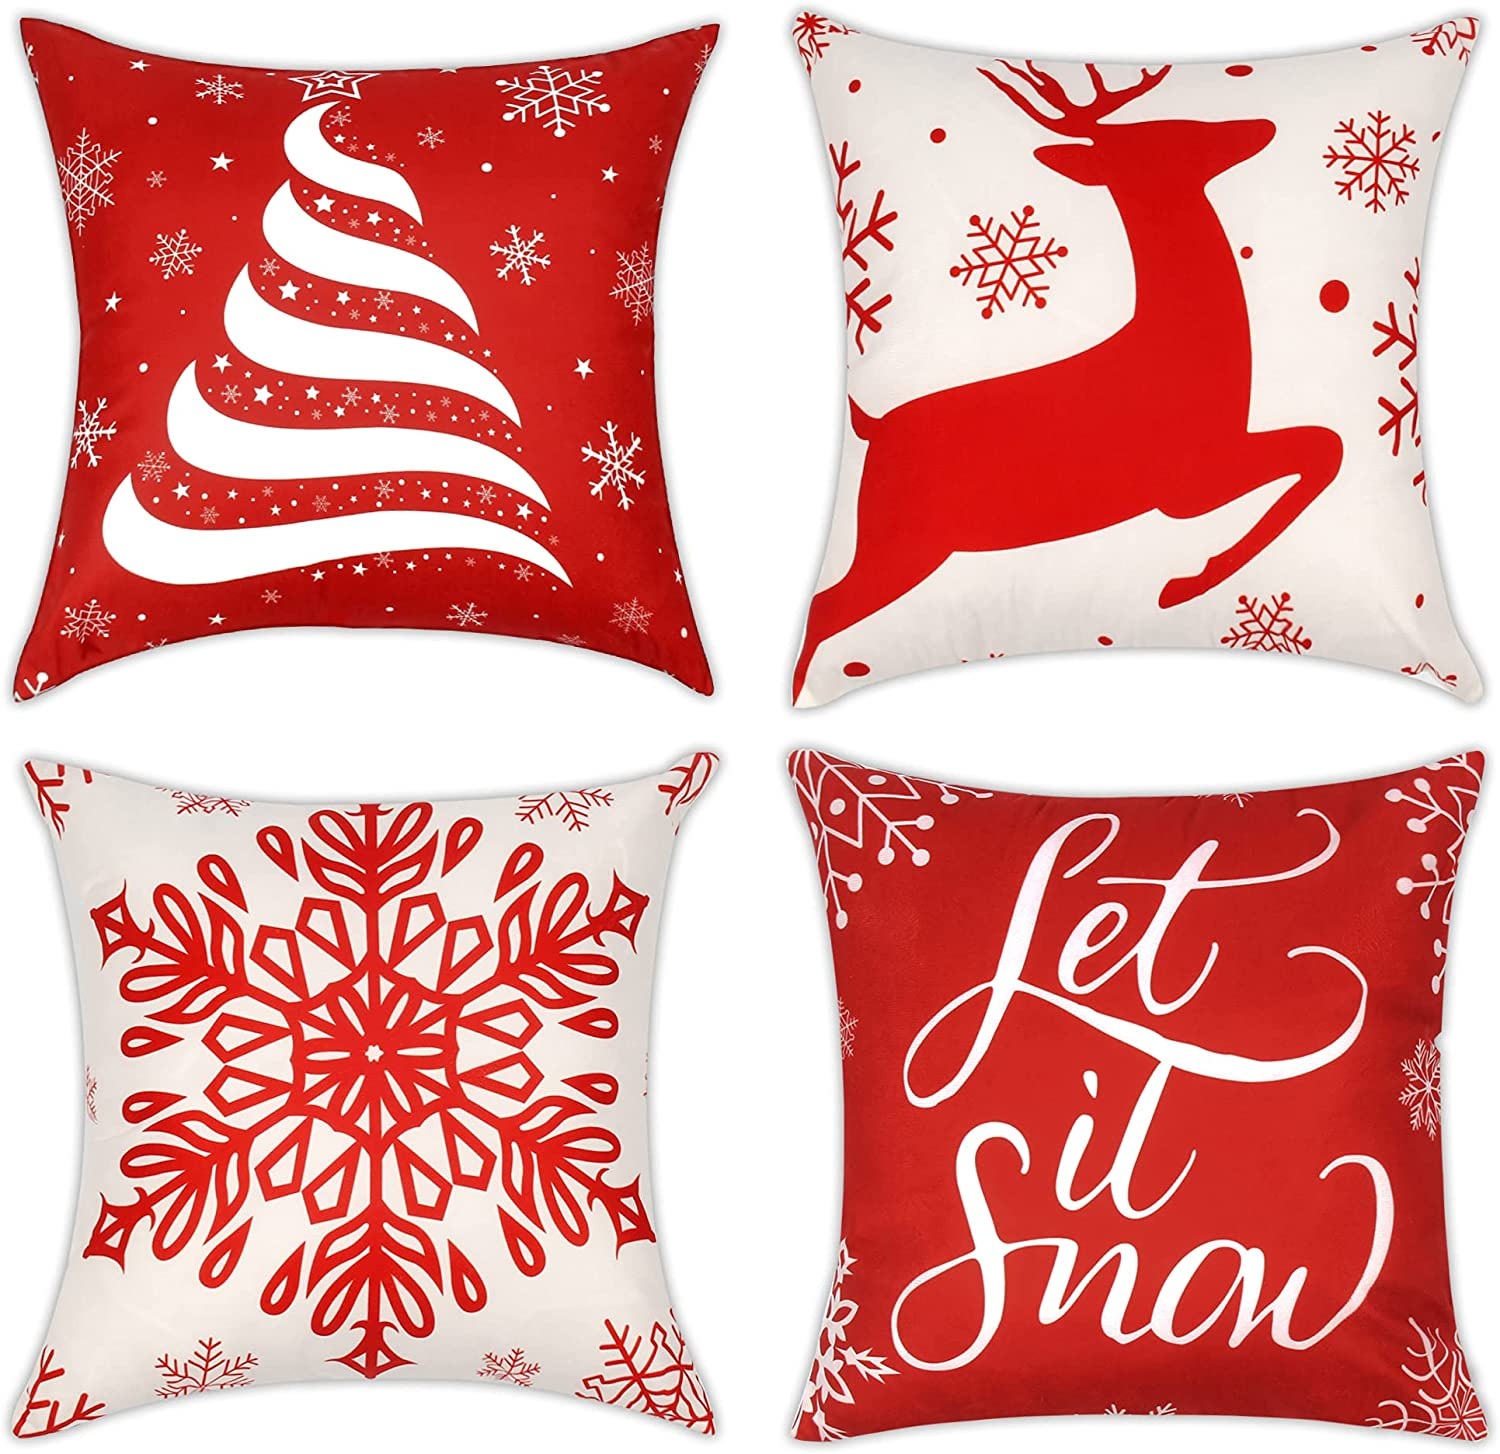 ReeQuo Christmas Throw Pillow Covers 18x18 Inch Set of 4, Farmhouse Holiday Pillow Cases for Sofa Couch Home Decoration Xmas Pillow Covers